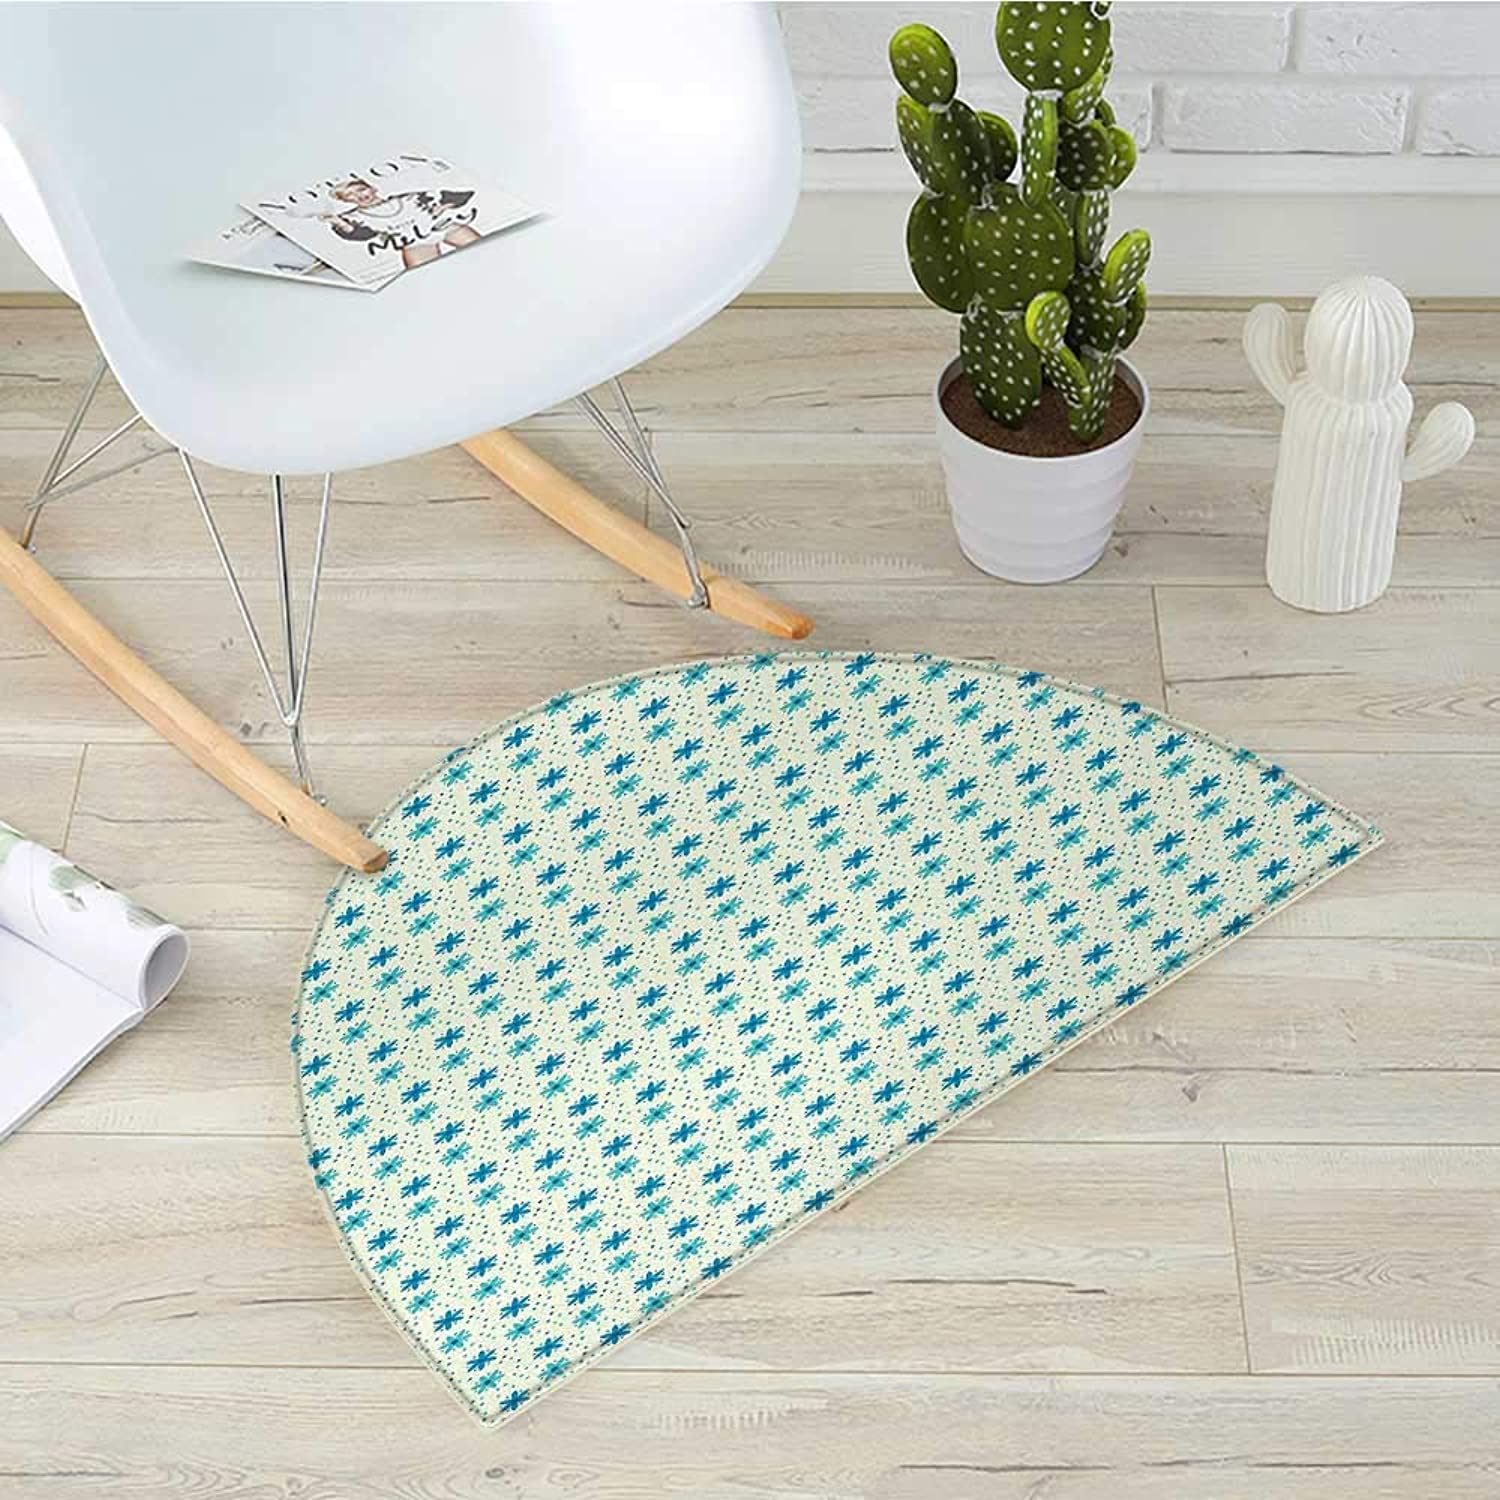 Ivory and bluee Semicircular CushionNostalgic Doodle Dotted Background Nature Growth Arrangement Entry Door Mat H 39.3  xD 59  bluee Turquoise and Ivory